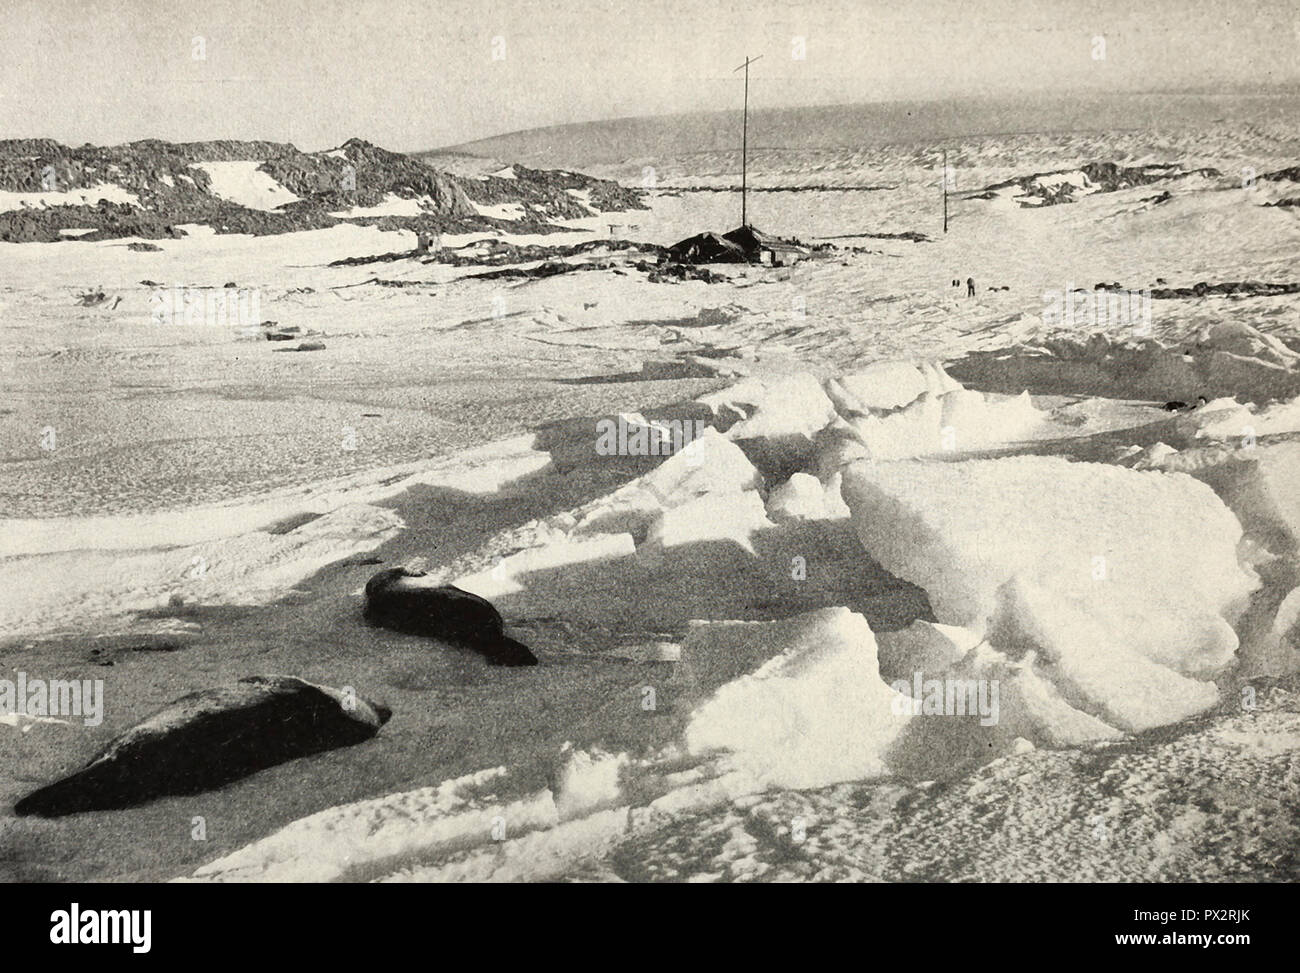 WInter Quarters, Adelie Land. The hut lies at the foot of the wireless mast near the center. In the background the slopes rise to a plateau. This was the way by which sledging parties made their way to the interior. Antarctica, circa 1910 - Stock Image